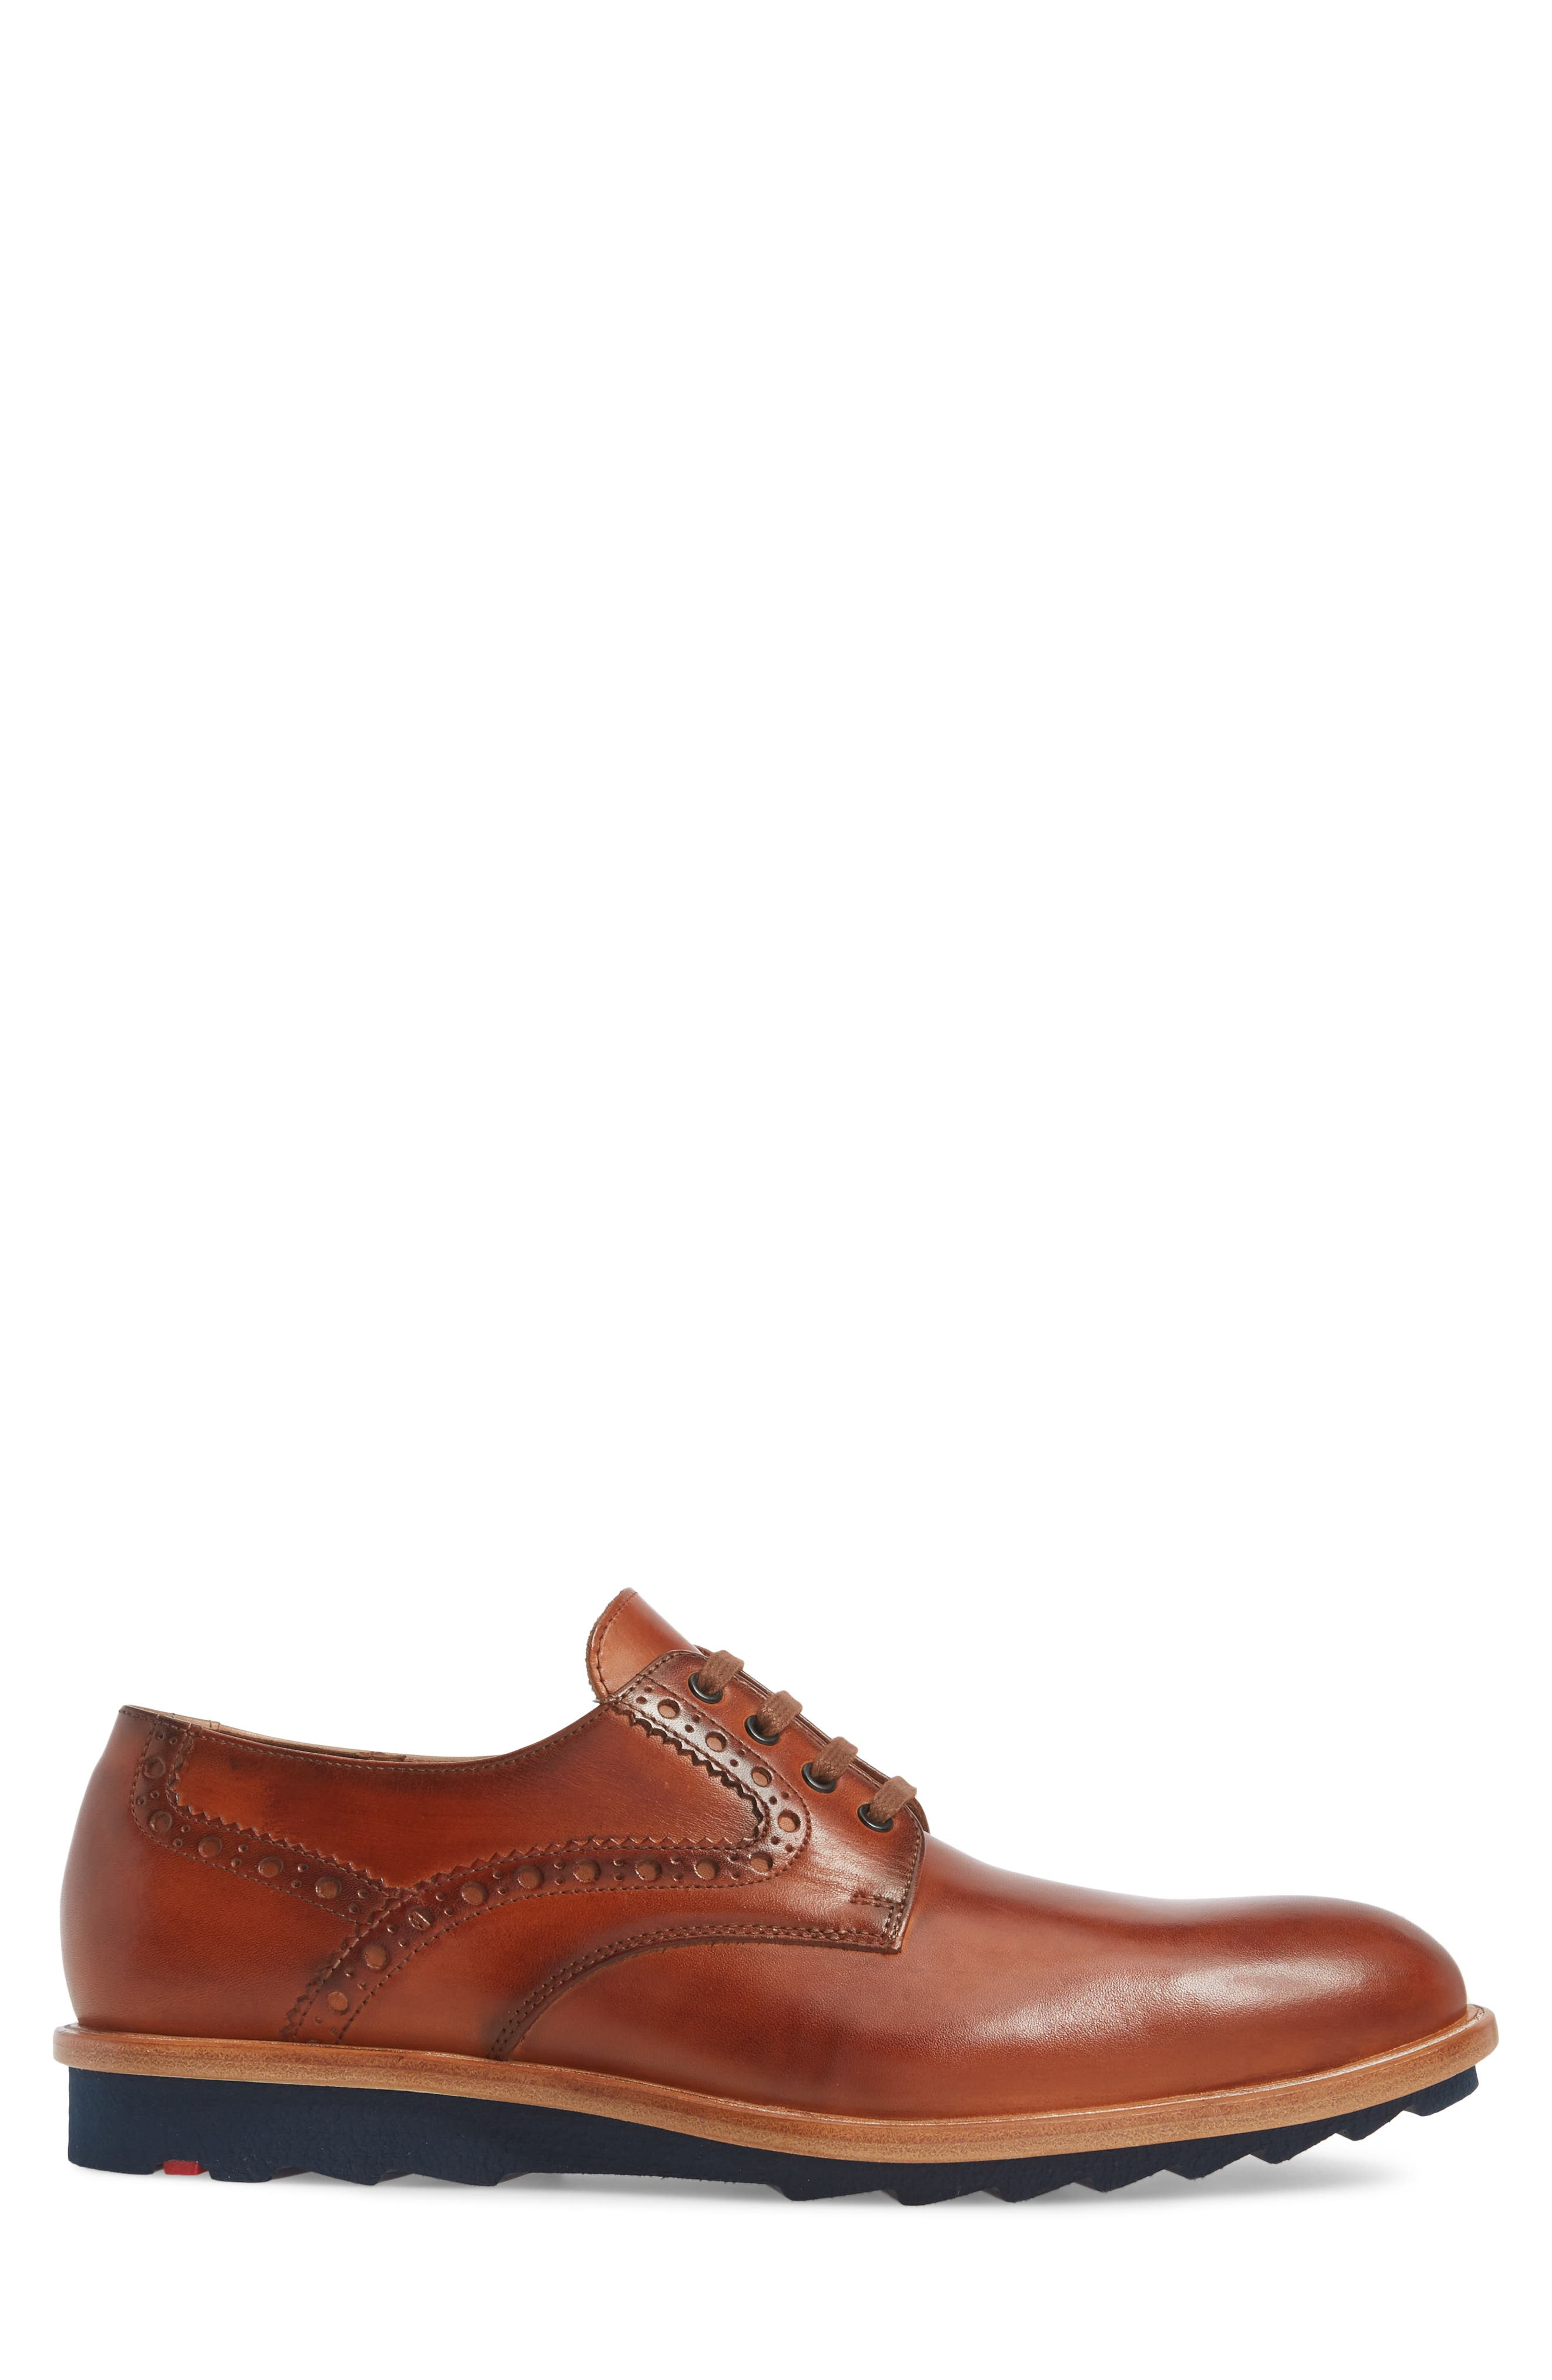 Fabian Plain Toe Derby,                             Alternate thumbnail 3, color,                             Fox Brown Leather